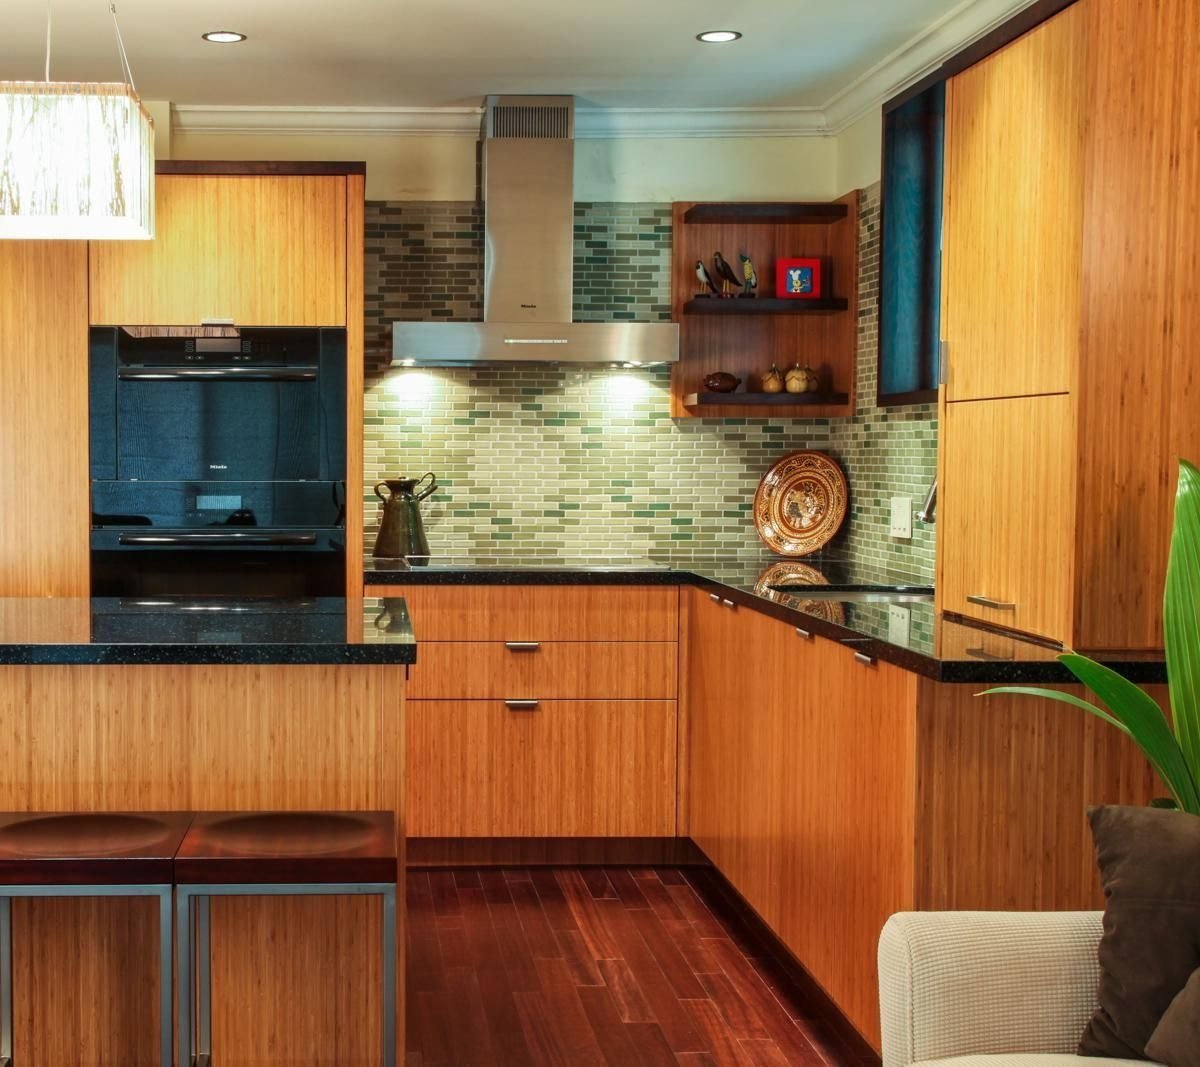 Eco Friendly Green Kitchen Cabinets Bamboo Kitchen Cabinets Kitchen Cabinets And Flooring Cost Of Kitchen Cabinets